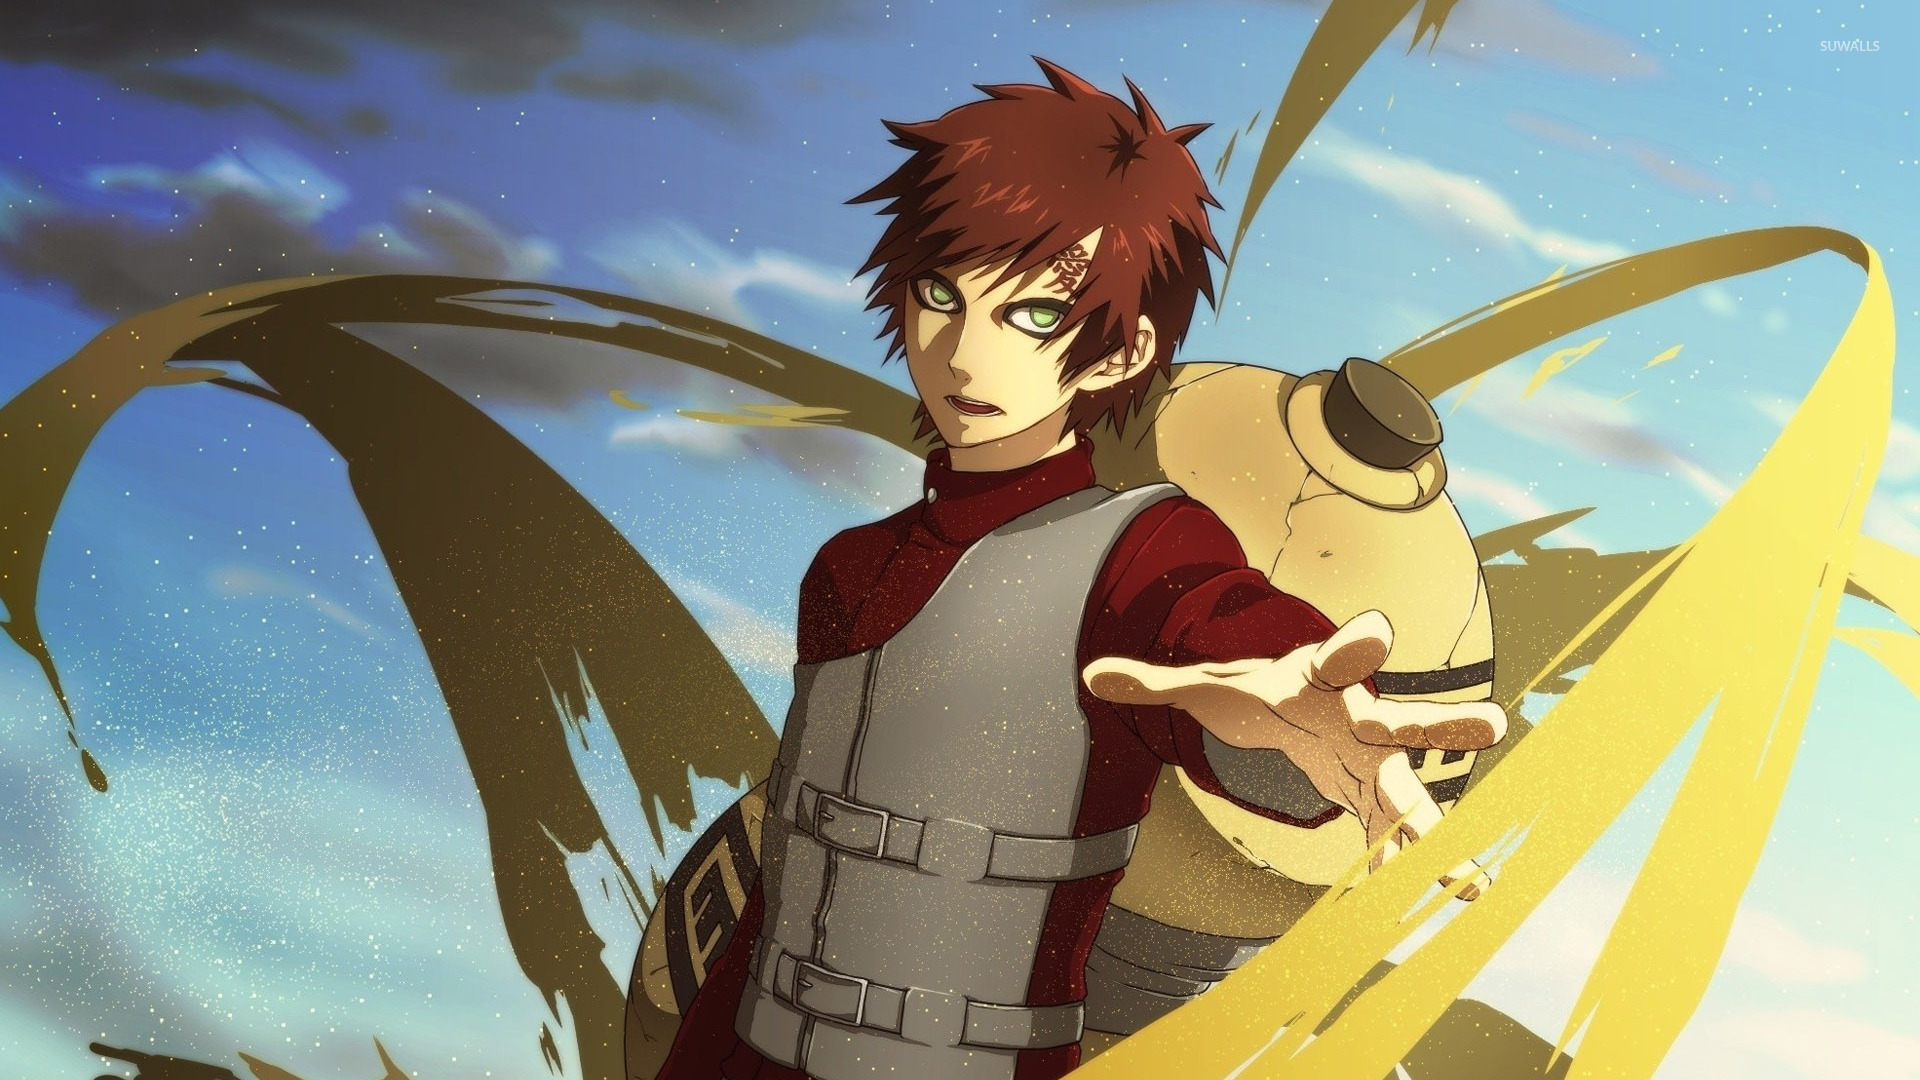 gaara naruto - photo #38